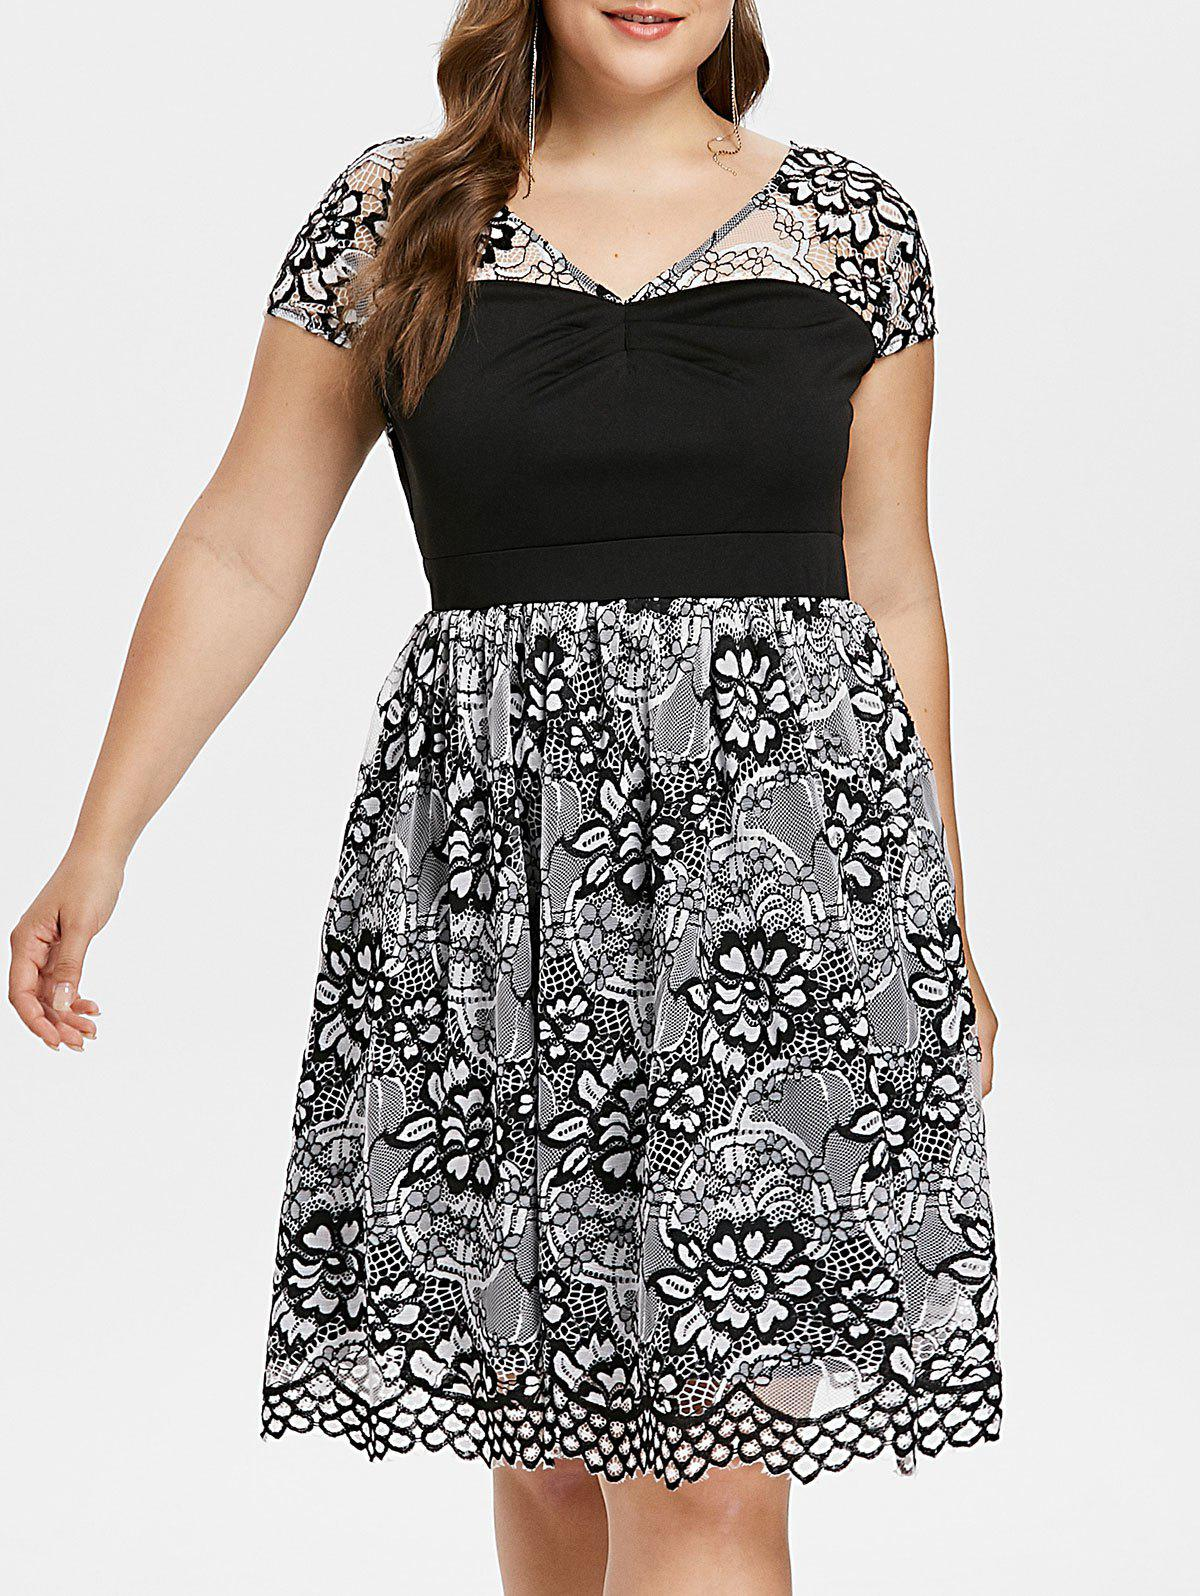 Plus Size Floral Lace V Neck Dress - multicolor 1X